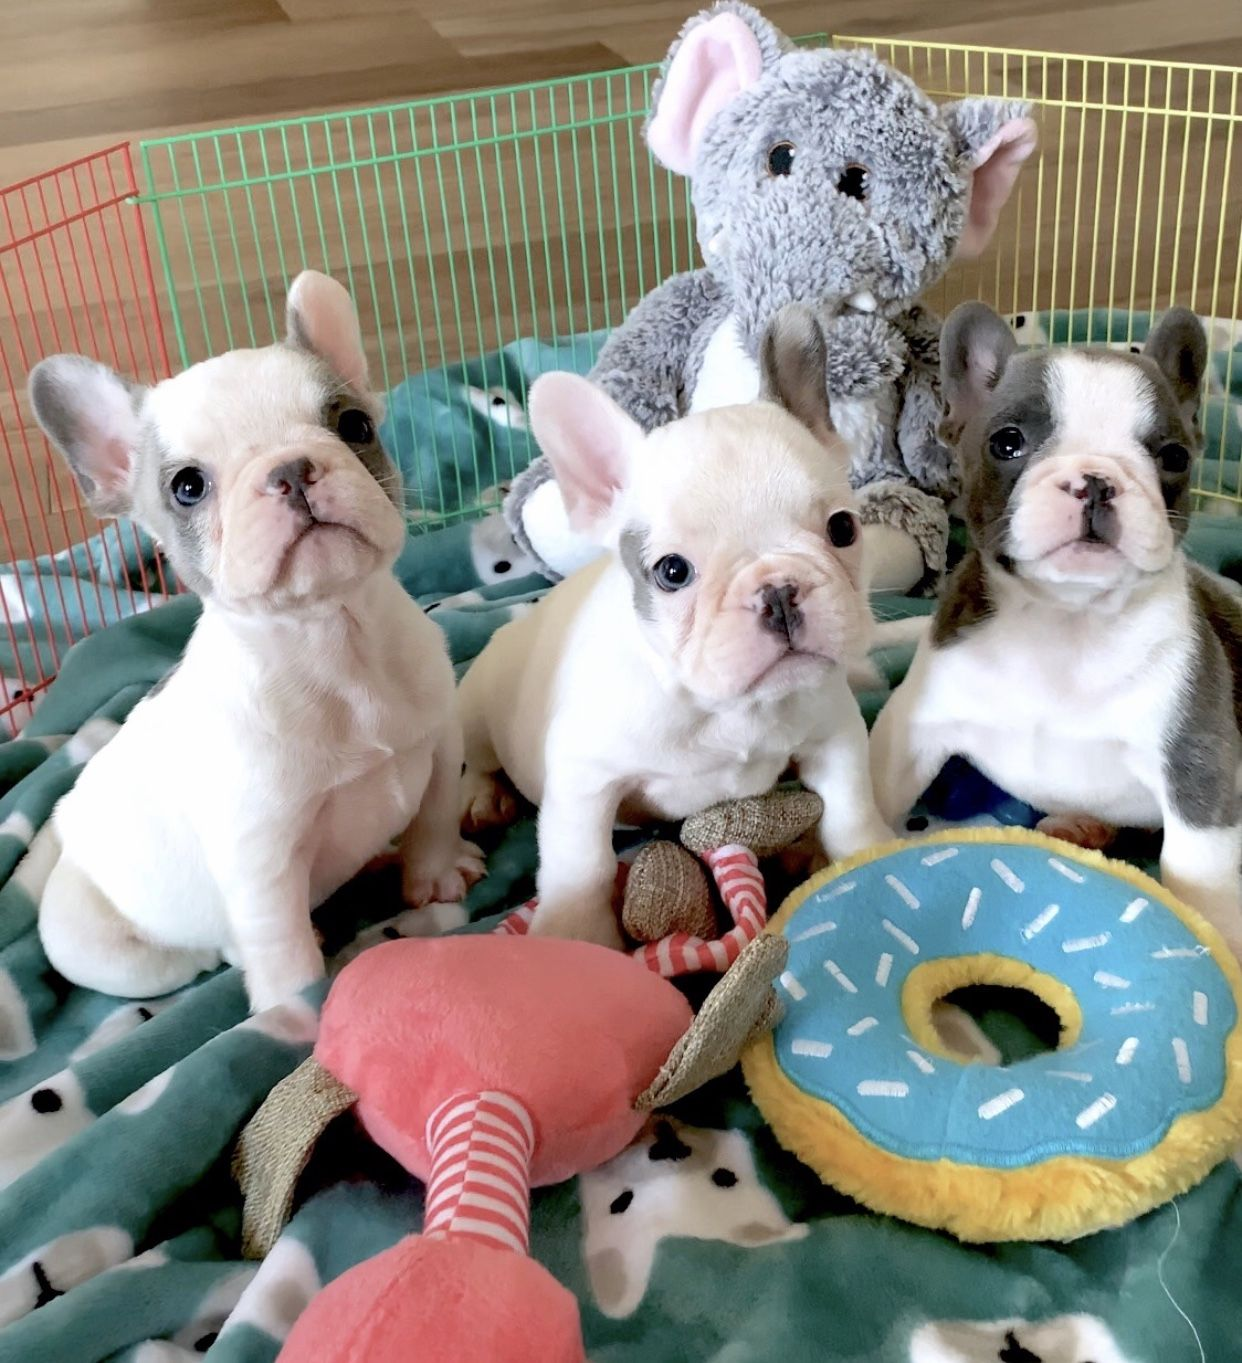 Lexie Brigham Tiny Baxter Blue Pied Beauties Available To Loving Pet Homes Www Poeticfrenchbulldogs Com Love Pet French Bulldog Puppies Puppy Time